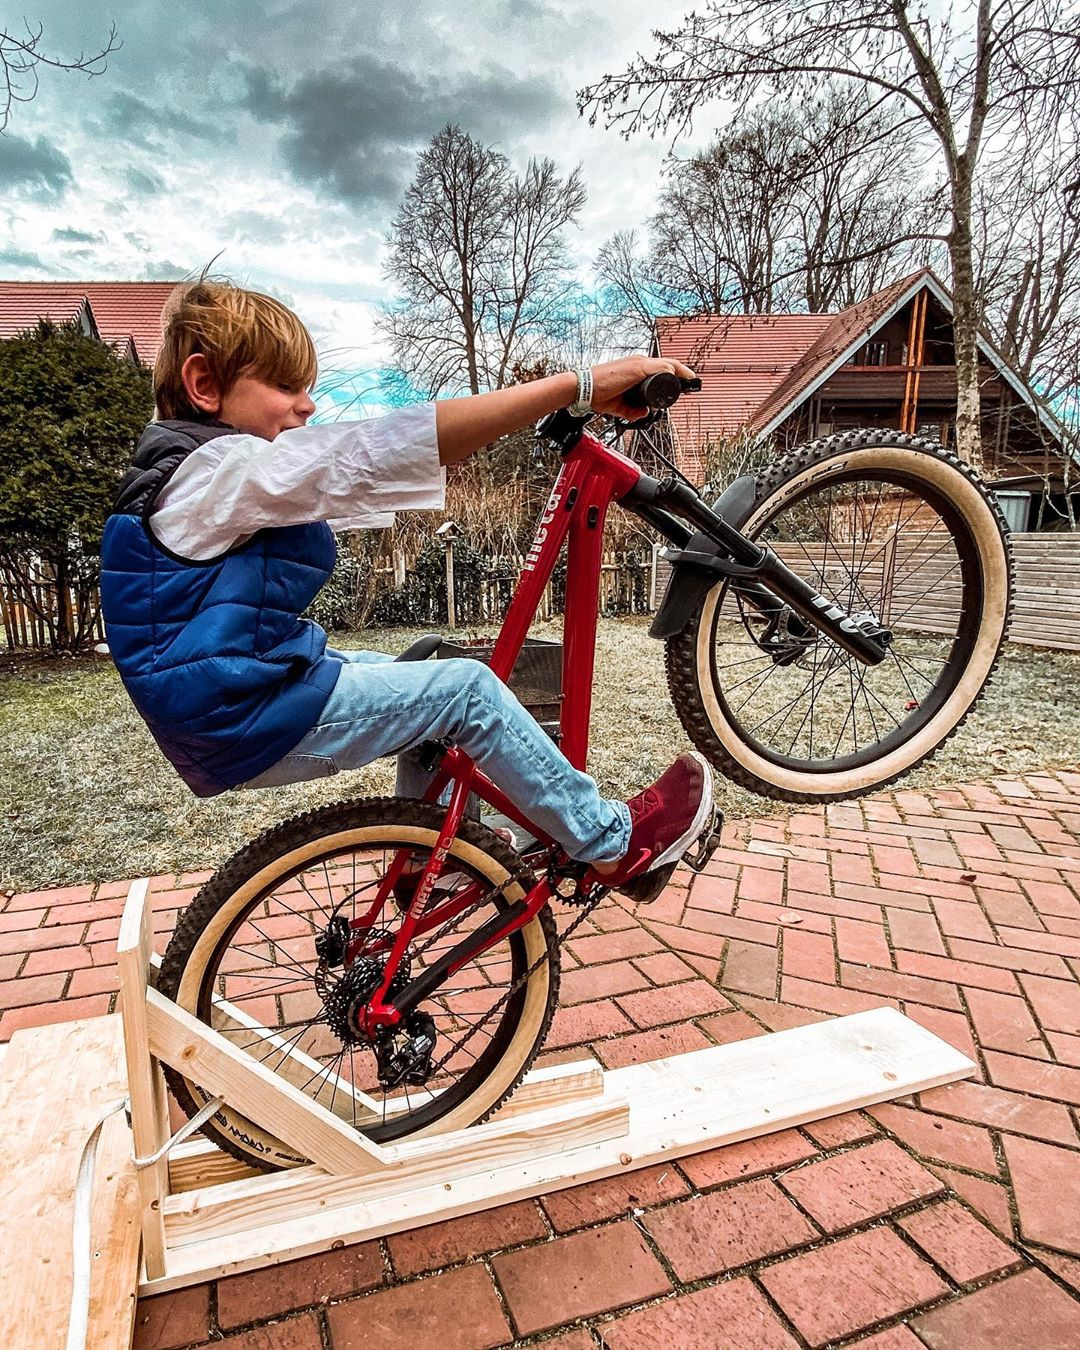 Thanks to @zimblake and @tomcardymtb for the inspiration and YouTube tutorials on how to make a Manual machine! Fast learning curve on that thing for my kids!